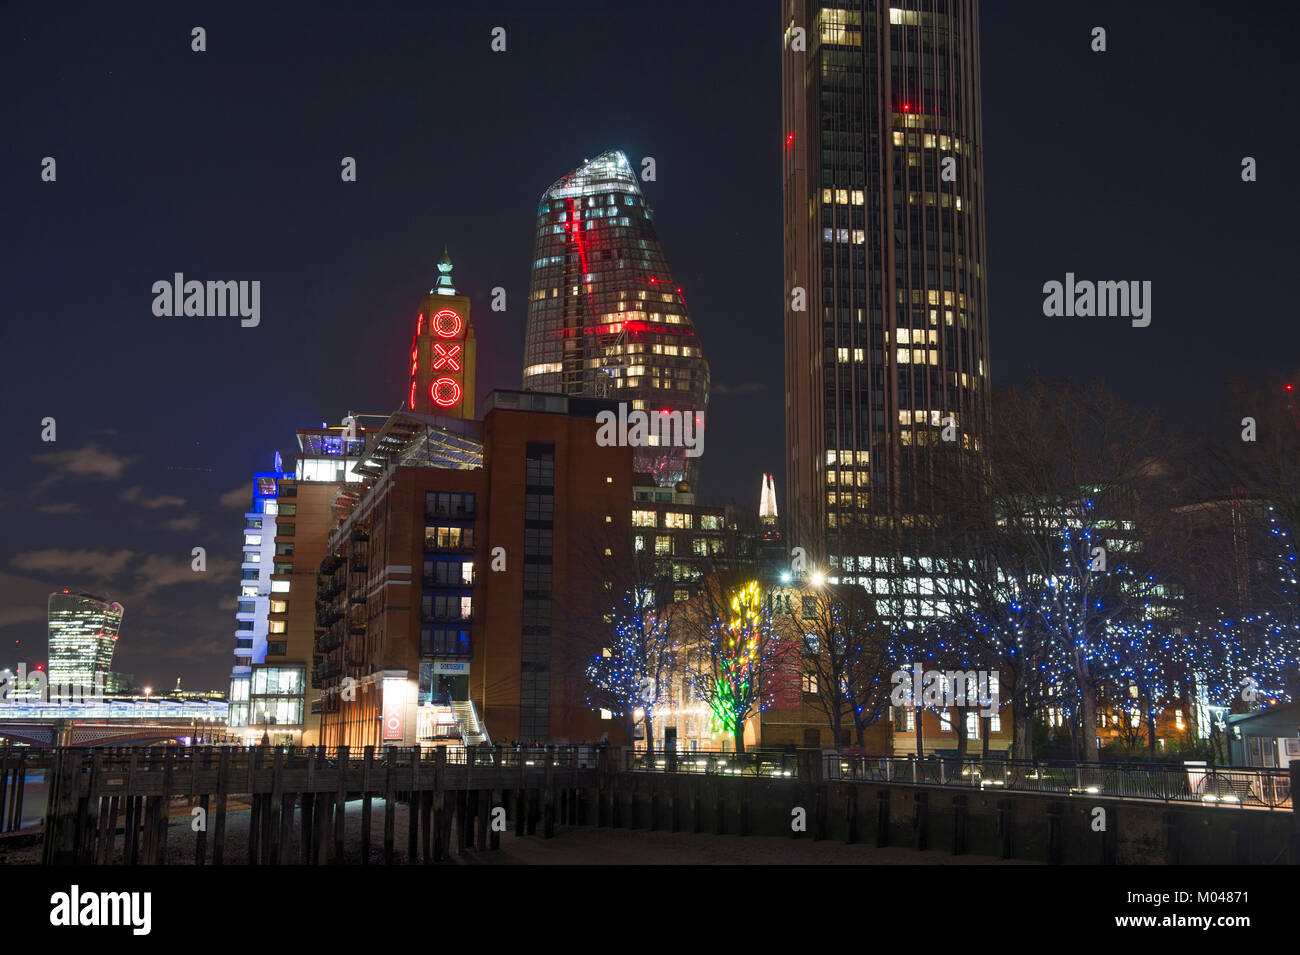 London, UK. 18th Jan, 2018. Clear and cold night in central London under the stars with landmark buildings lit up. - Stock Image